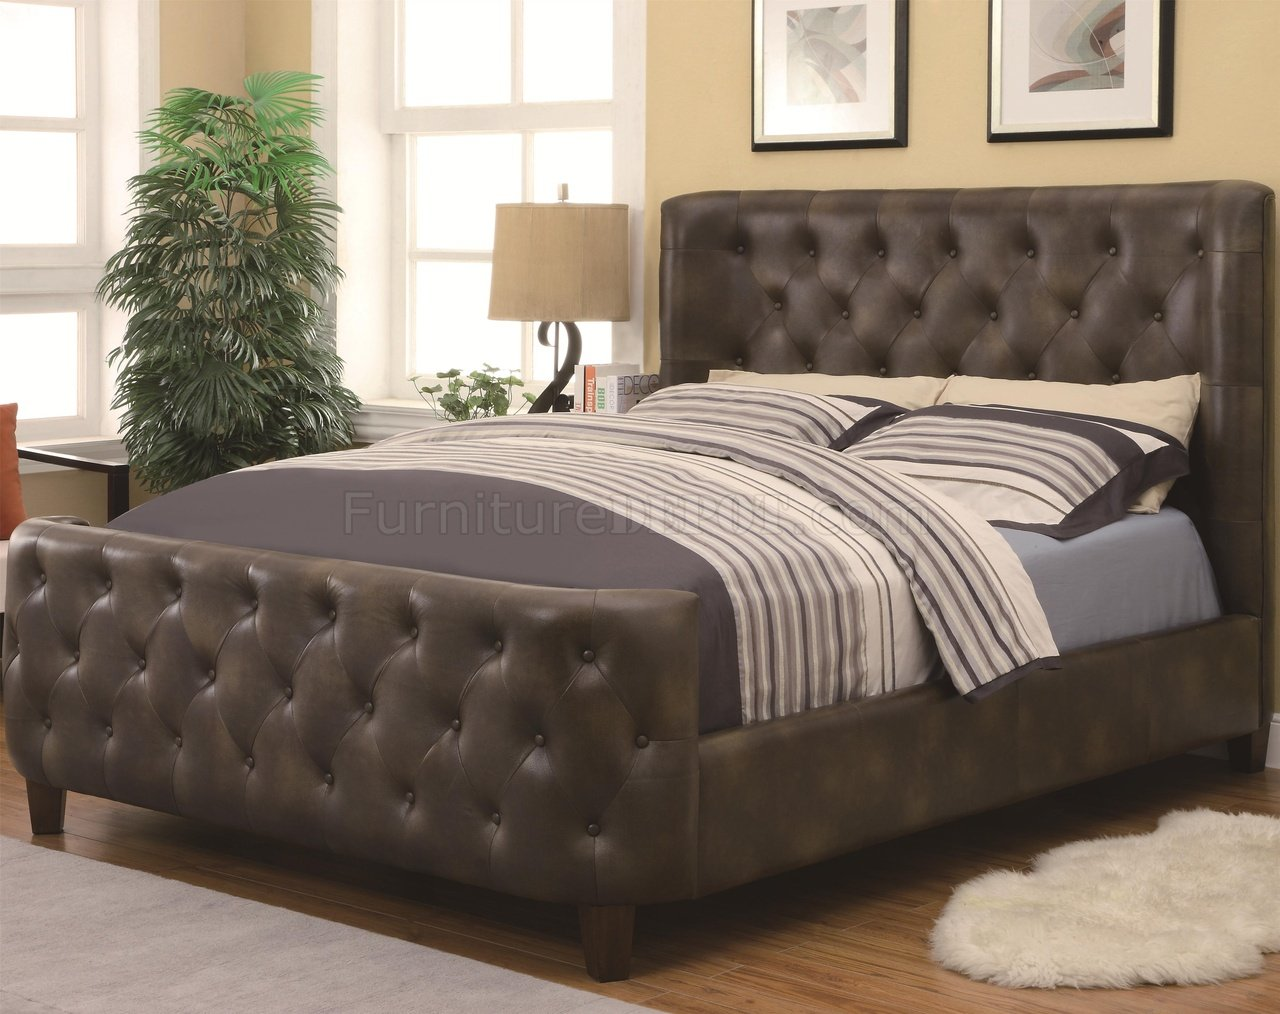 Auburn Furniture Mall 304249 Upholstered Bed By Coaster W Button Tufting